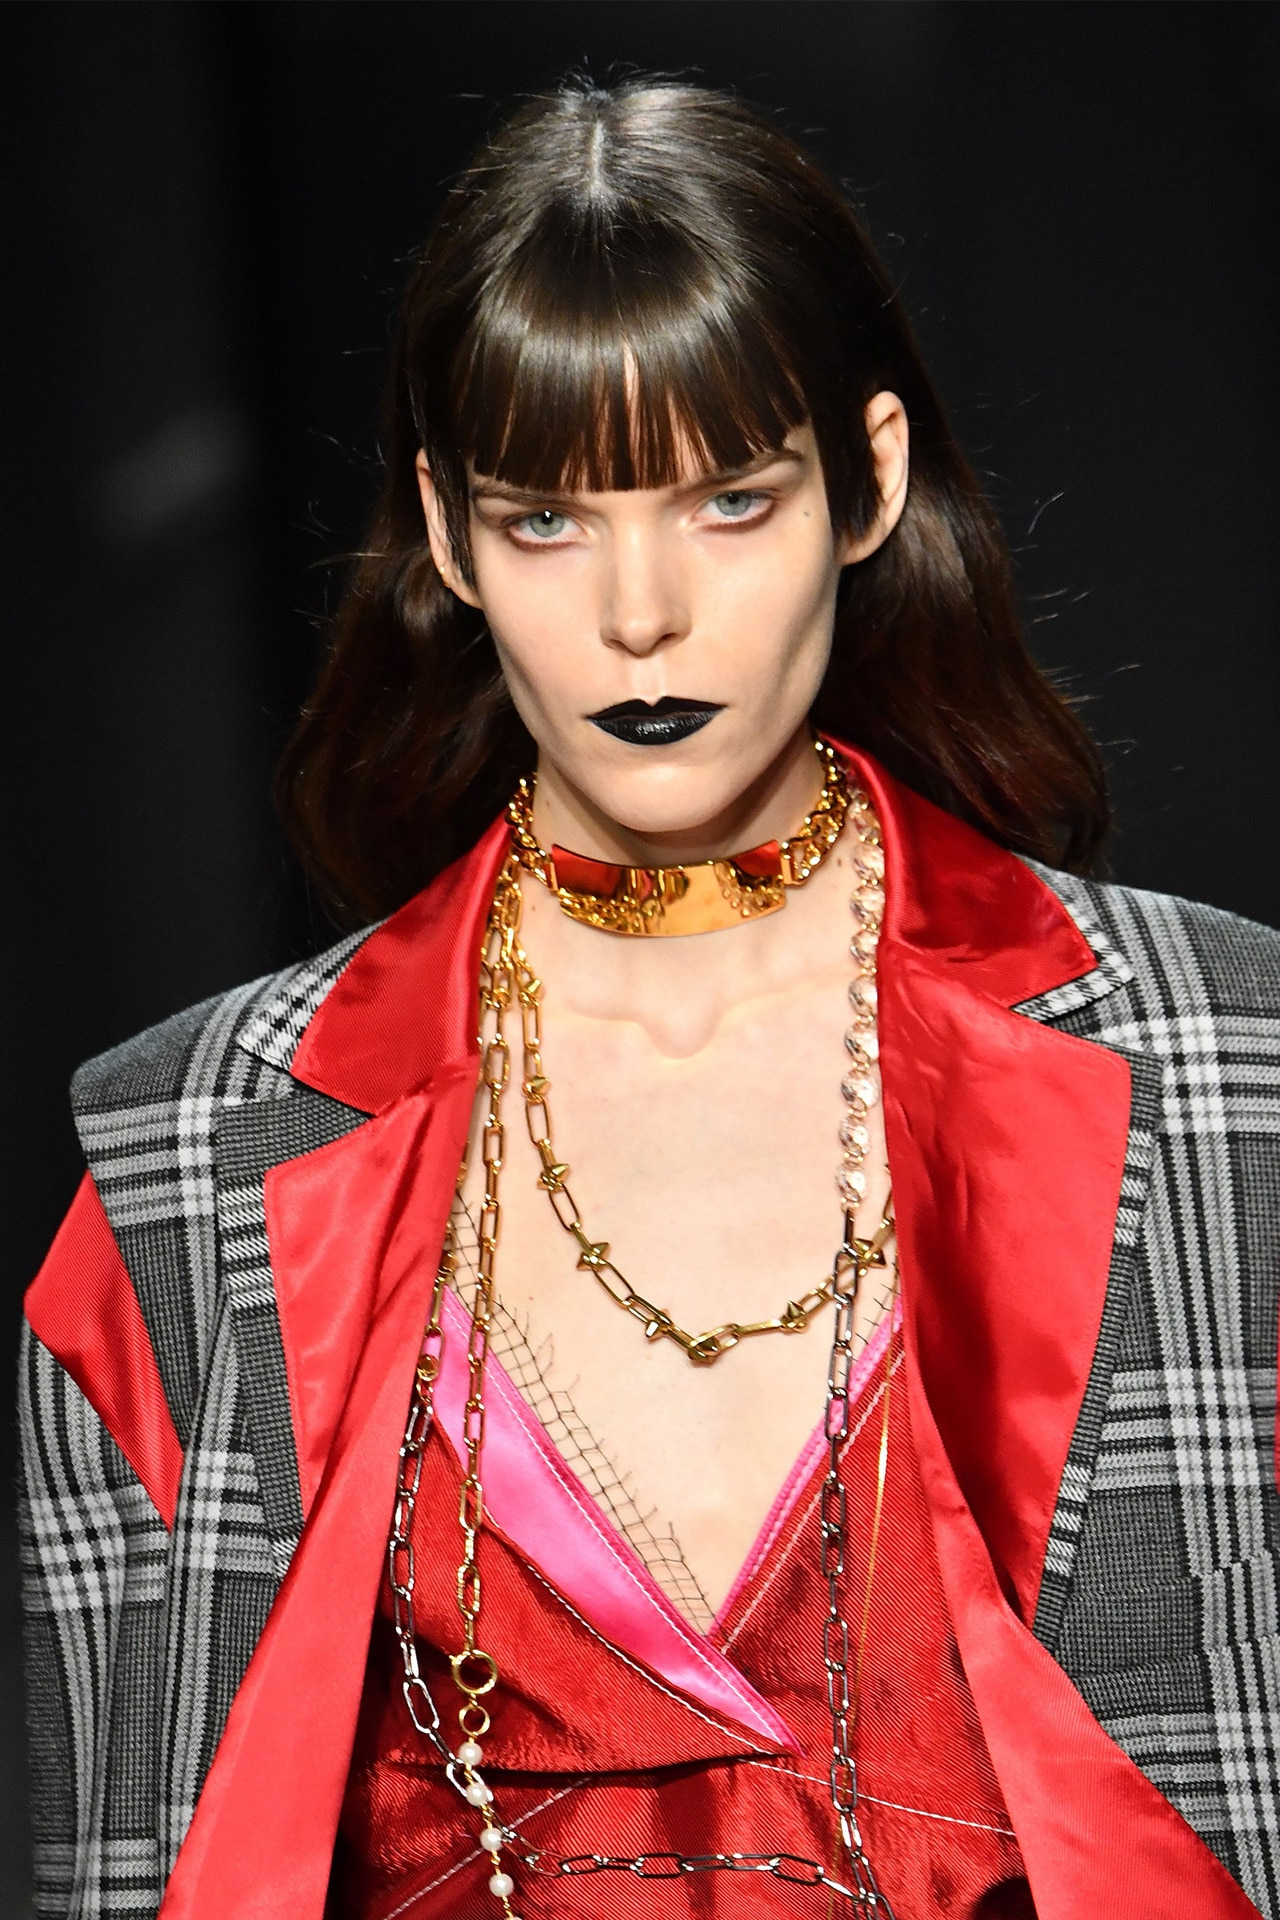 Back to black: the only lip colour you need this season